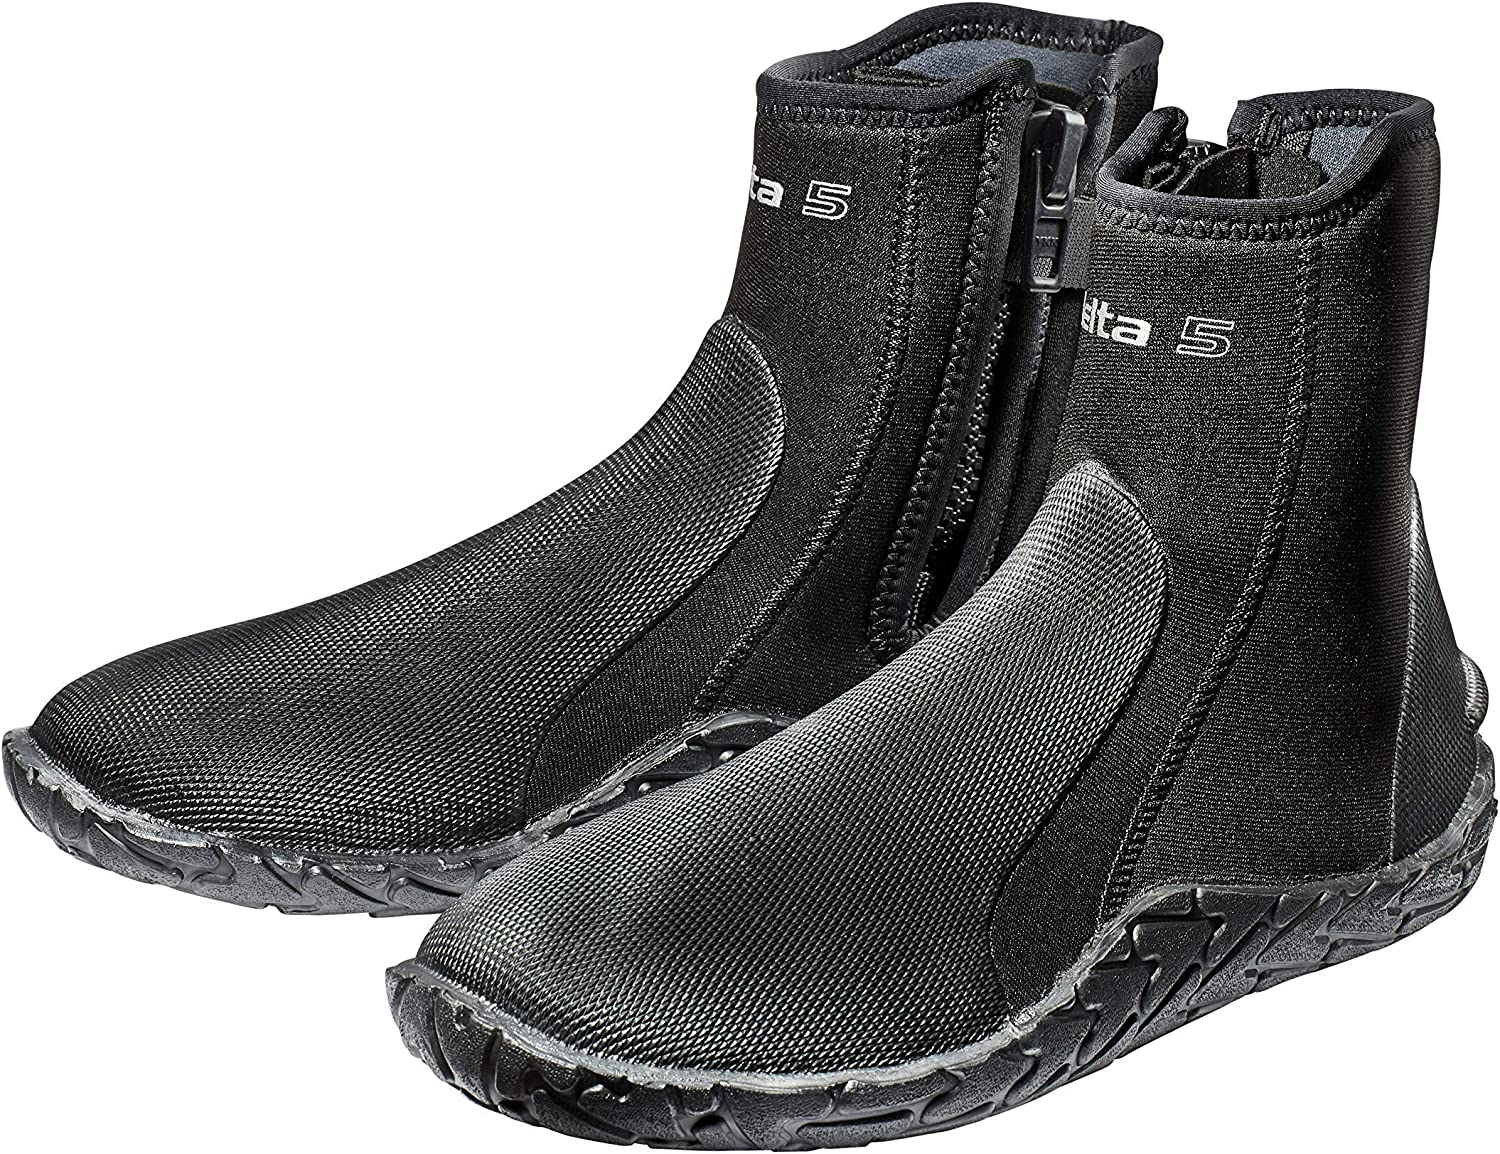 Buy SCUBAPRO Delta 5mm Dive Boot, 2X-Large Online at Low Prices in India -  Amazon.in